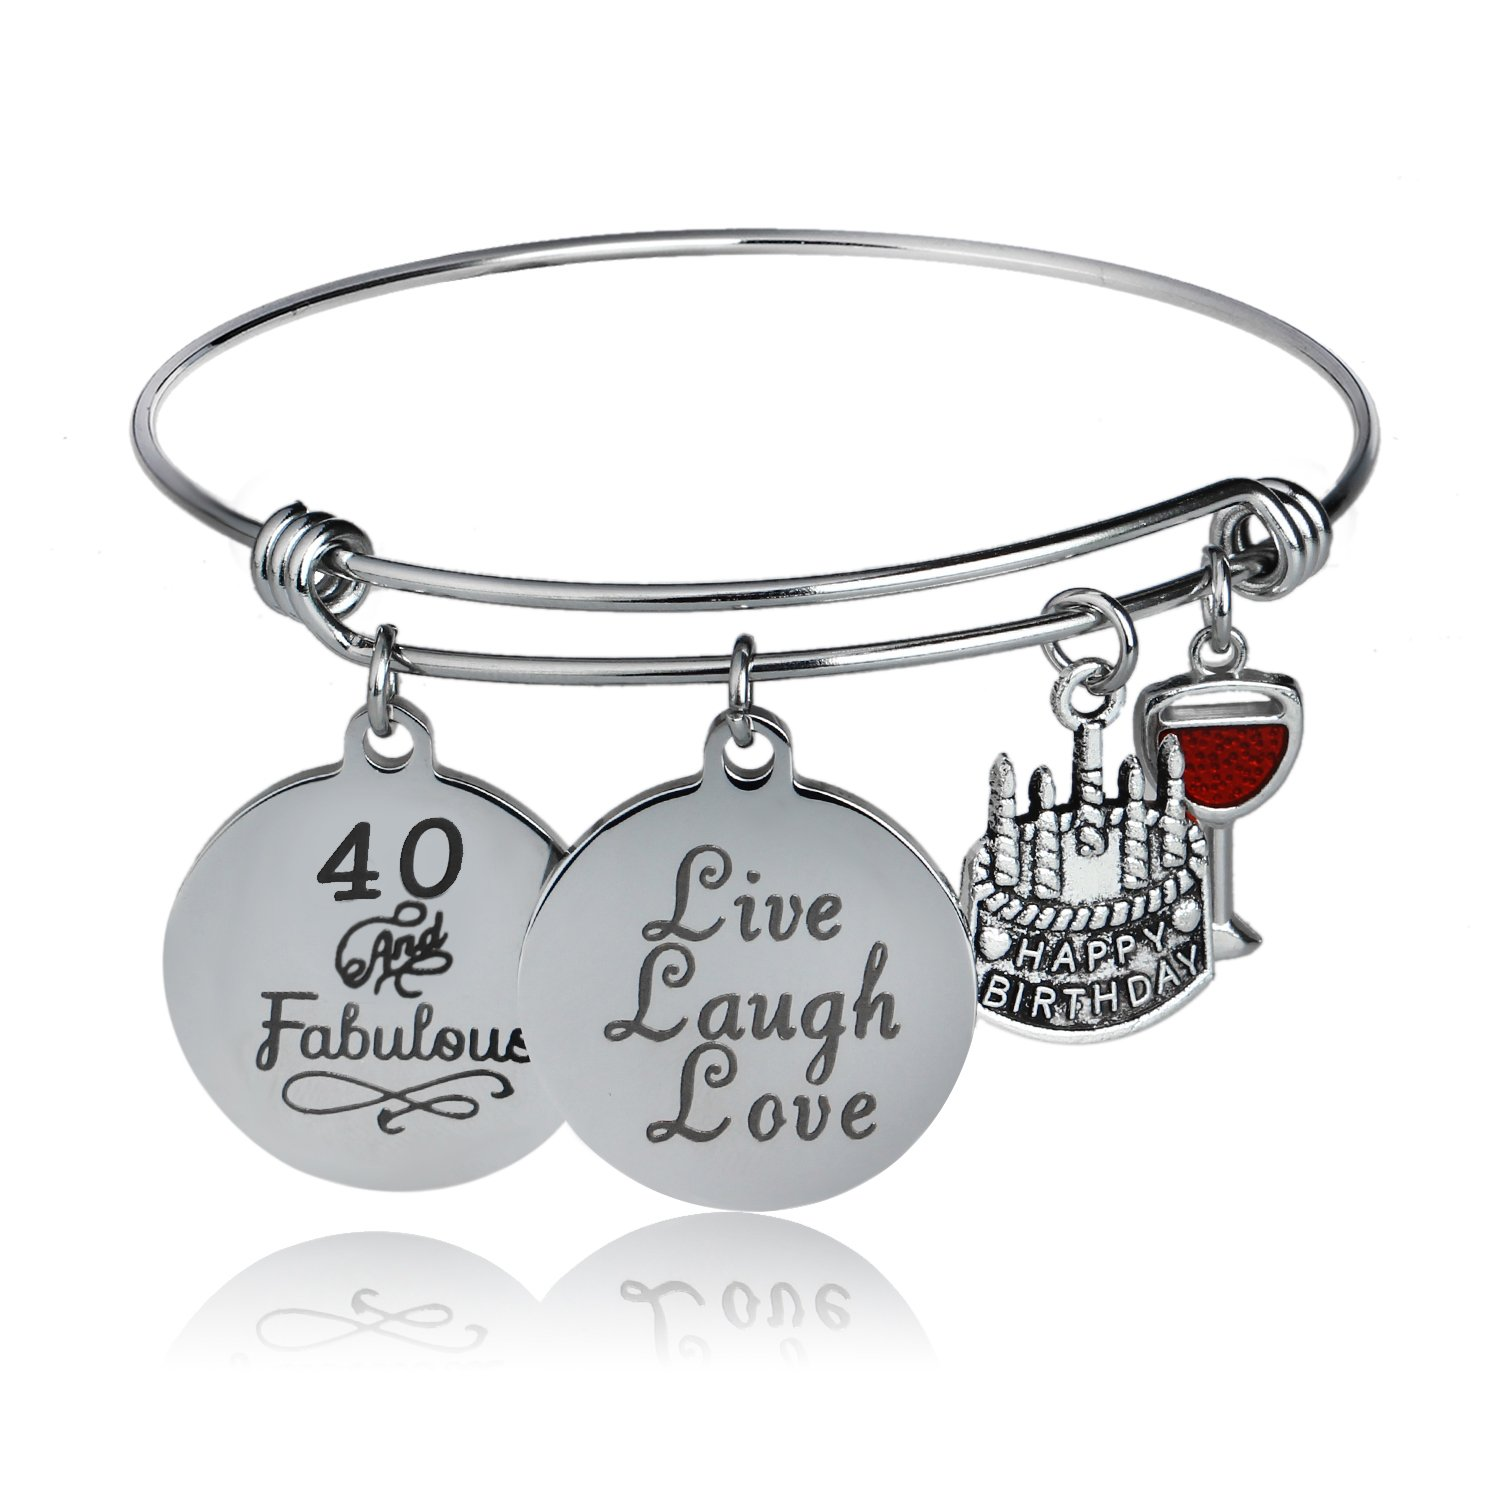 YeeQin Happy Birthday Bangles, Cake Cheer Live Laugh Love Charms Bangle Bracelets, Gifts For Her (40th Birthday)